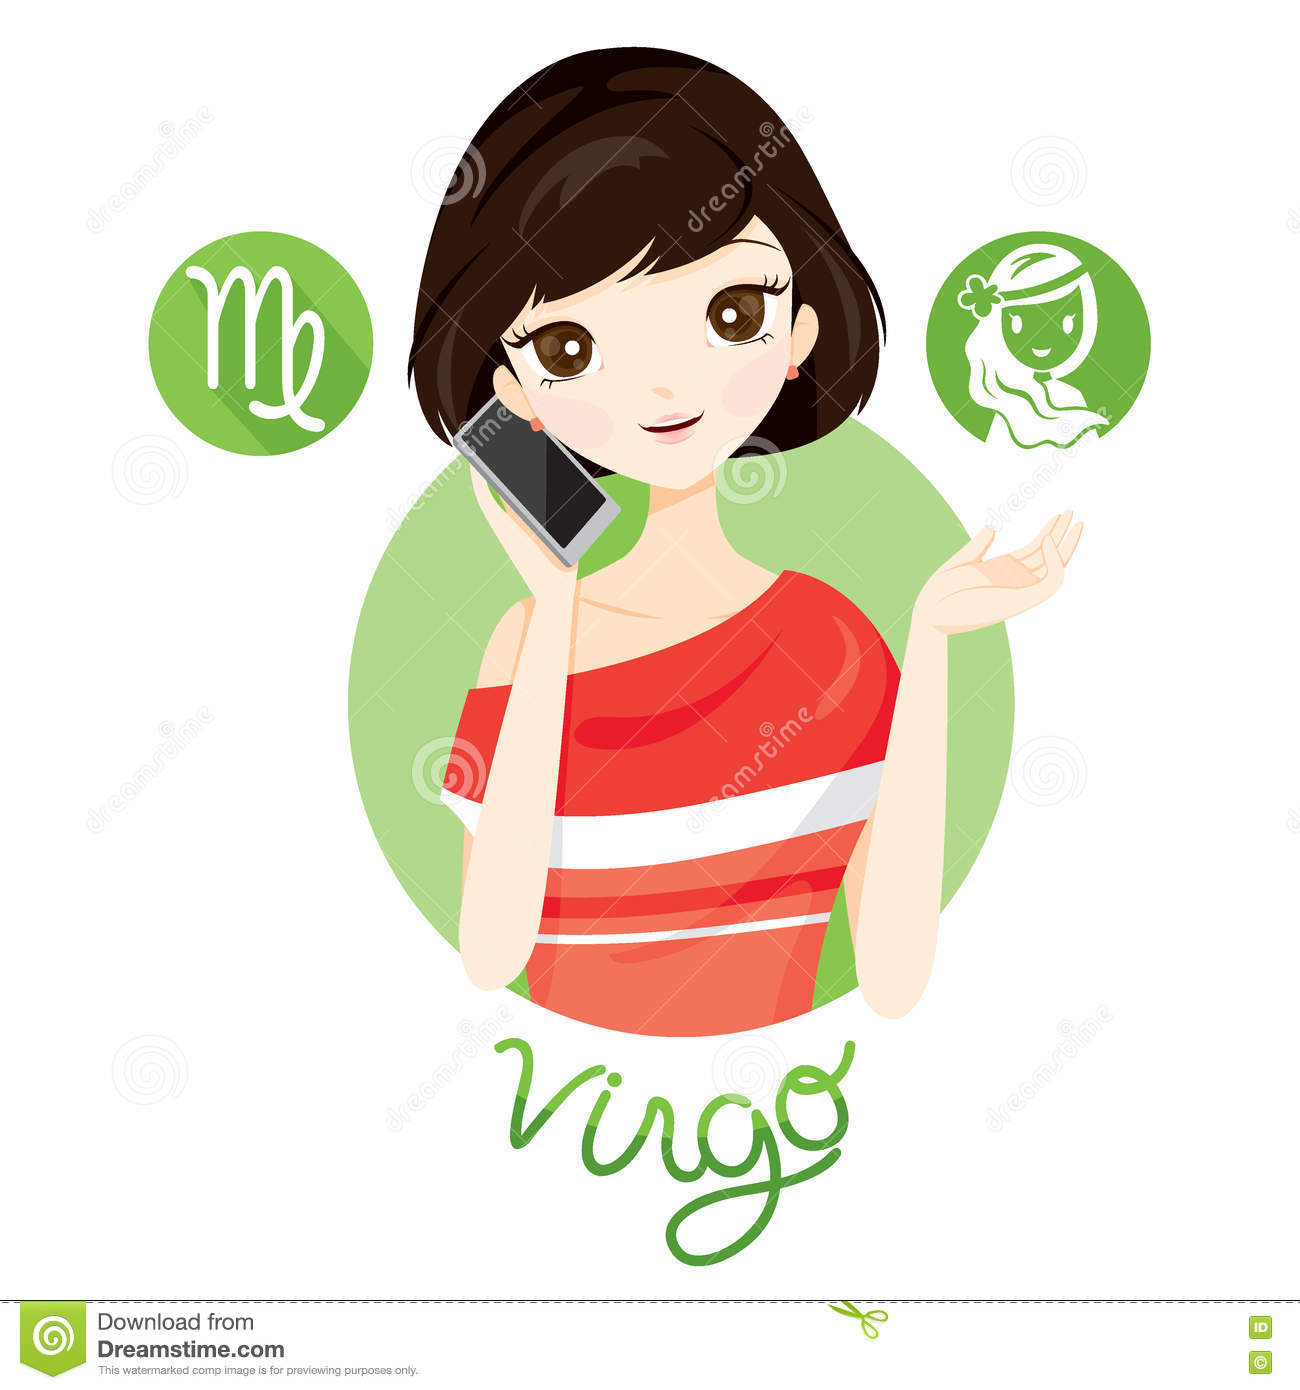 Beauty Journey Zodiak: Woman With Virgo Zodiac Sign Stock Vector